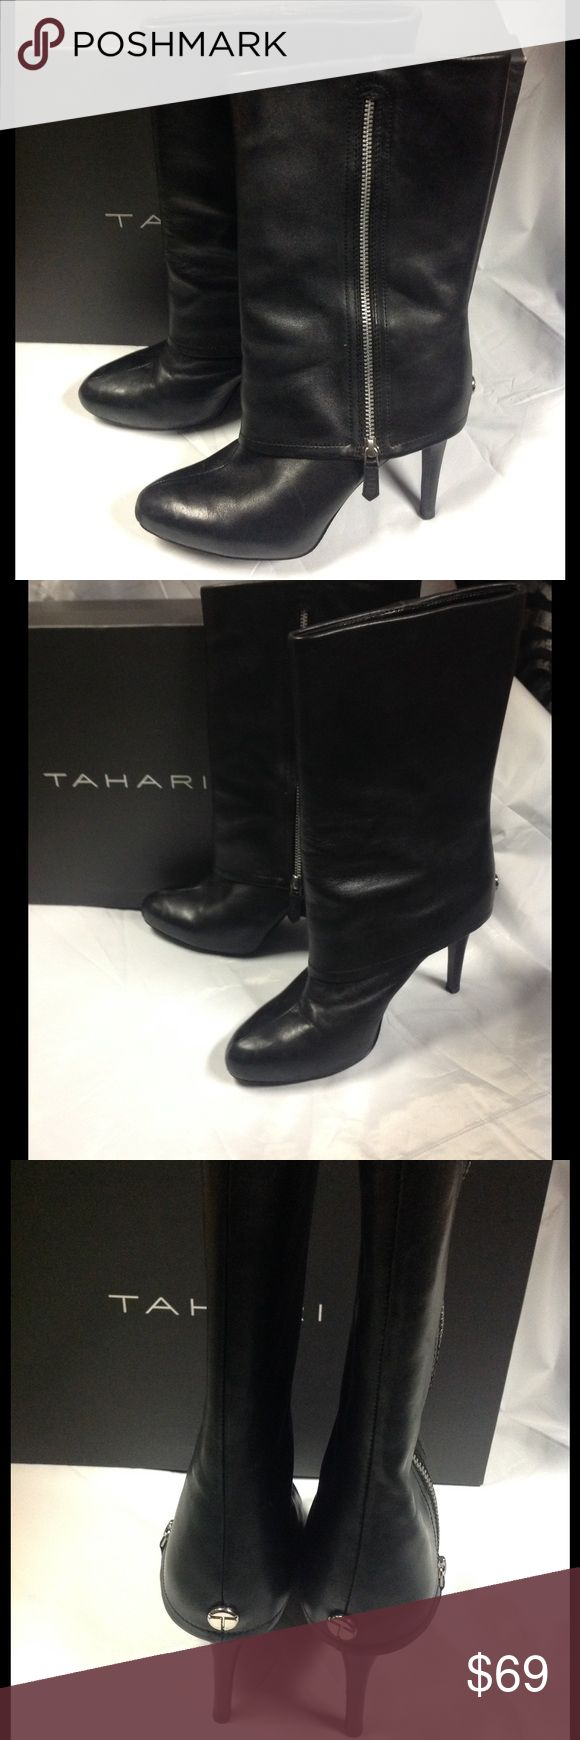 """TAHARI Foster style black leather boots heels 8.5 Very good condition. Do not show much wear at all. TAHARI Foster style black lambs leather fold over boots with silver zippers. Heel height is approx. 4"""". Boot height approx. 13"""" including heel. Boot shaft approx. 14"""" in diameter. Shipped in original box. Size 8.5 Tahari Shoes Heeled Boots"""